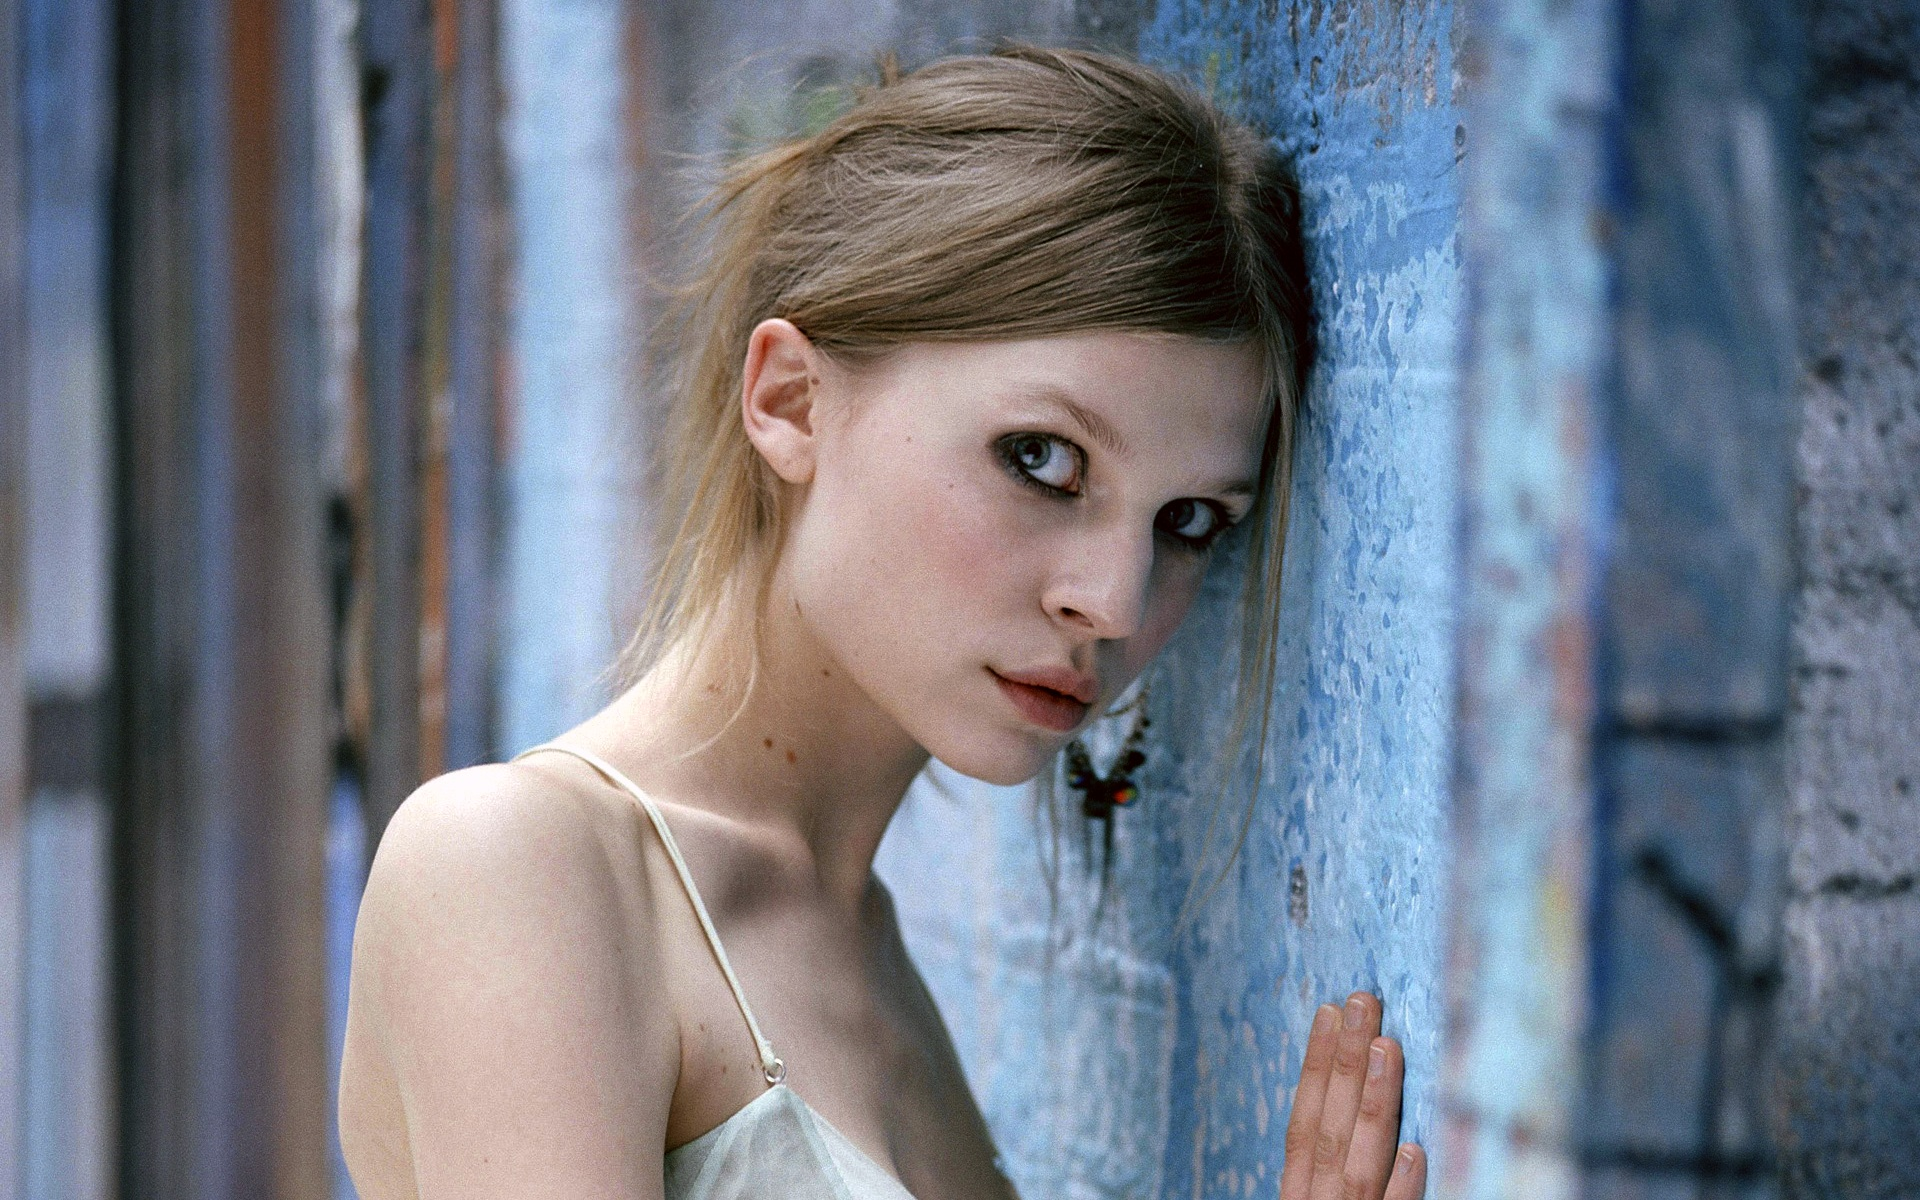 Clemence Poesy Clemence